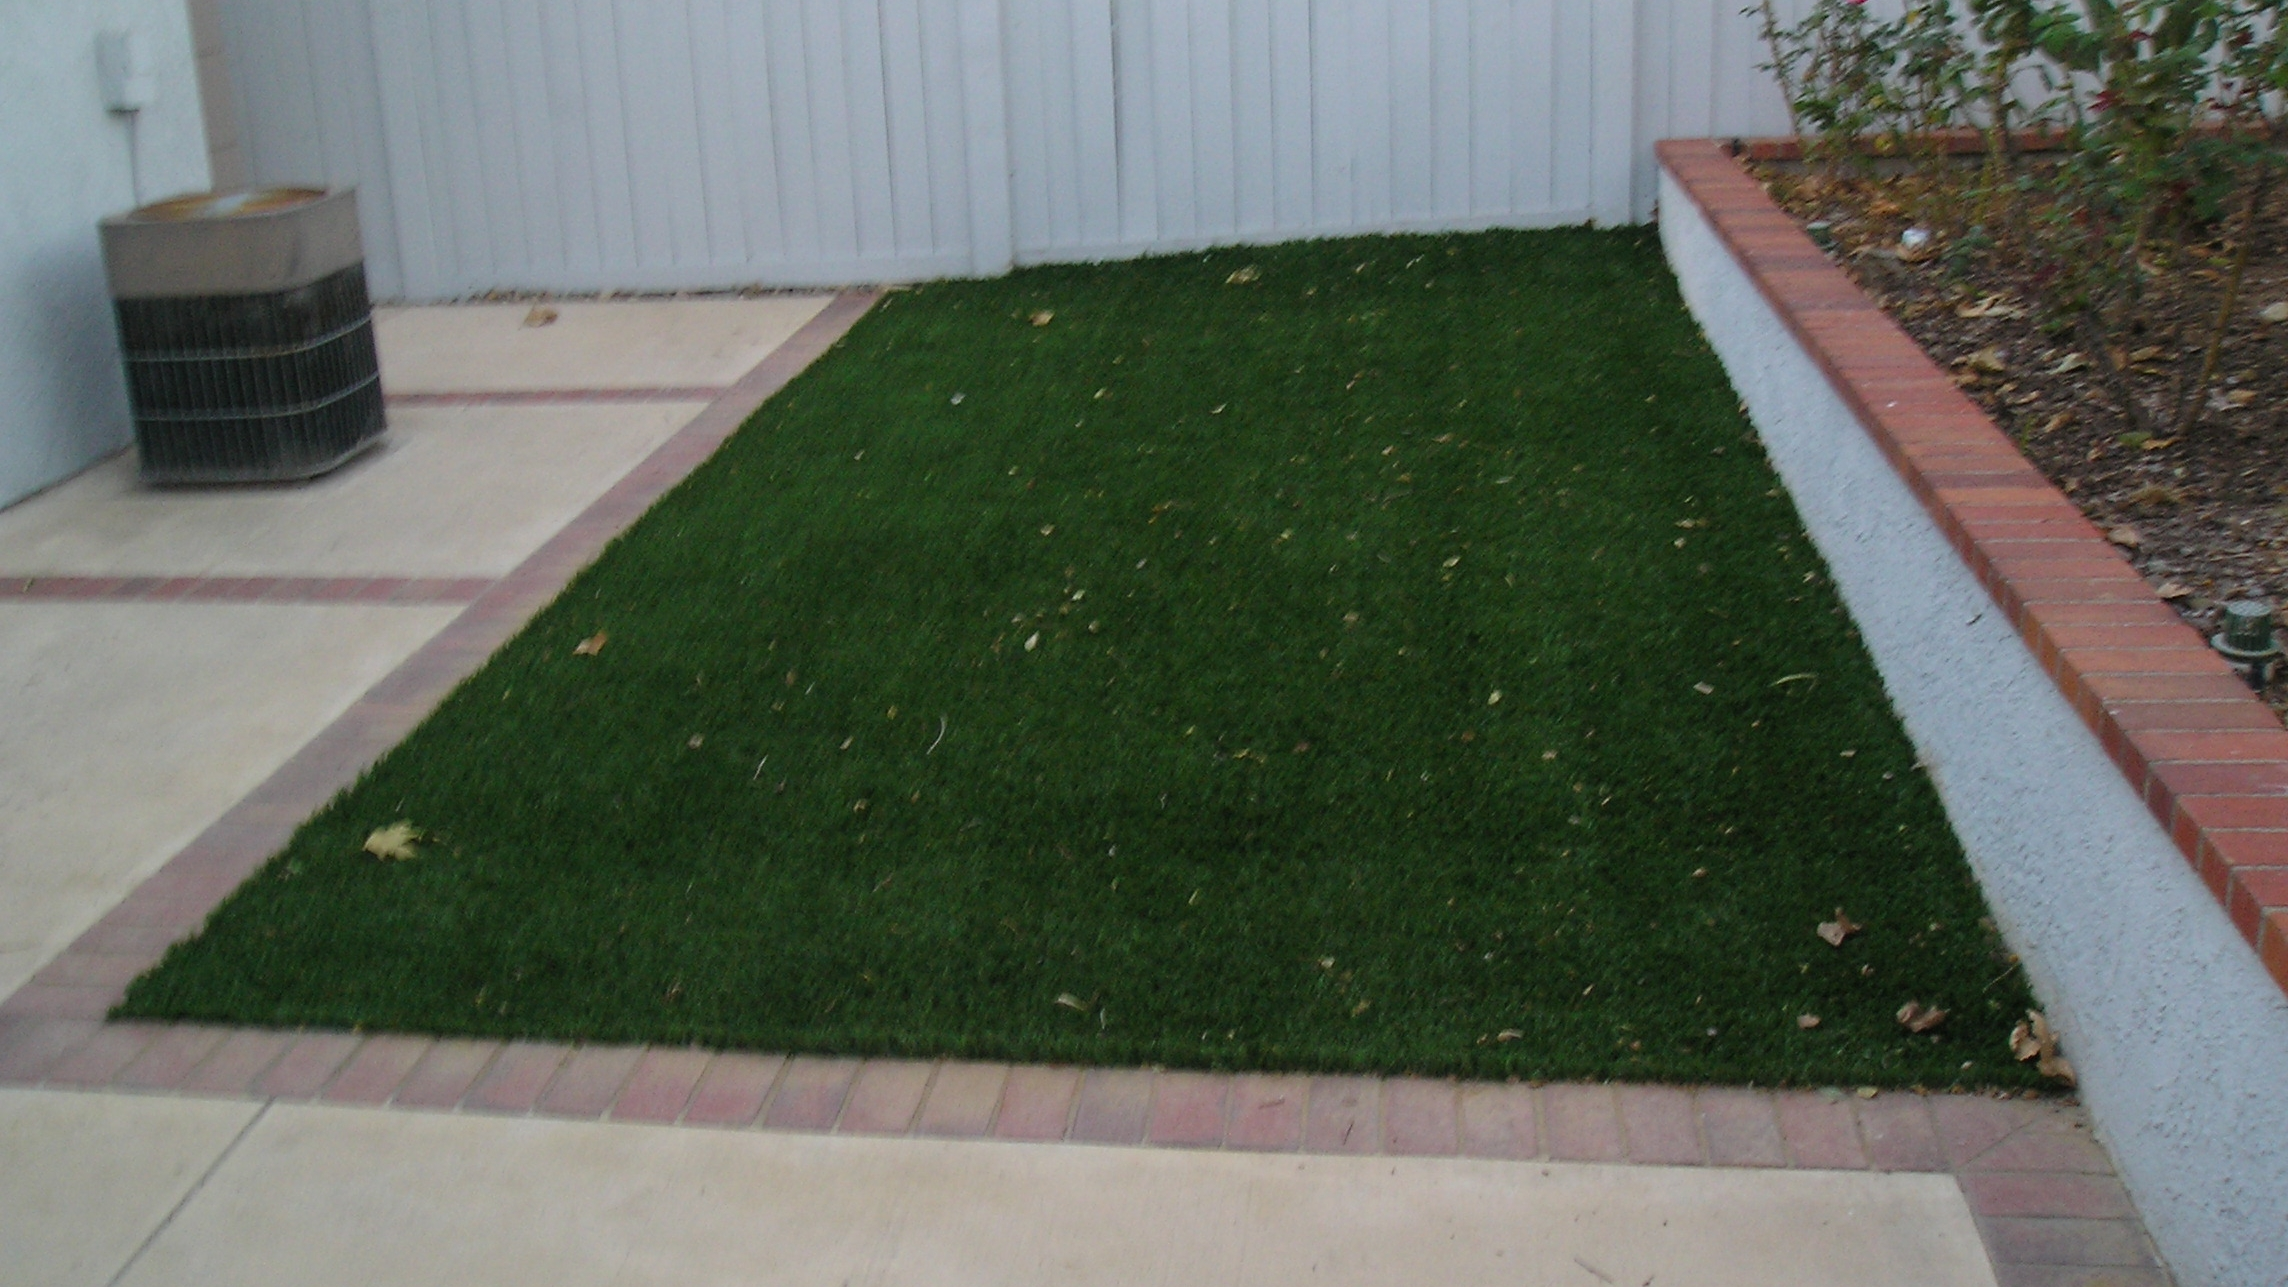 Full Recycle-91 pet friendly artificial grass,artificial grass,artificial turf,artificial lawn,artificial grass rug,artificial grass installation,artificial grass,fake grass,synthetic grass,grass carpet,artificial grass rug,pet friendly artificial grass,artificial turf,synthetic turf,artificial turf installation,how to install artificial turf,used artificial turf